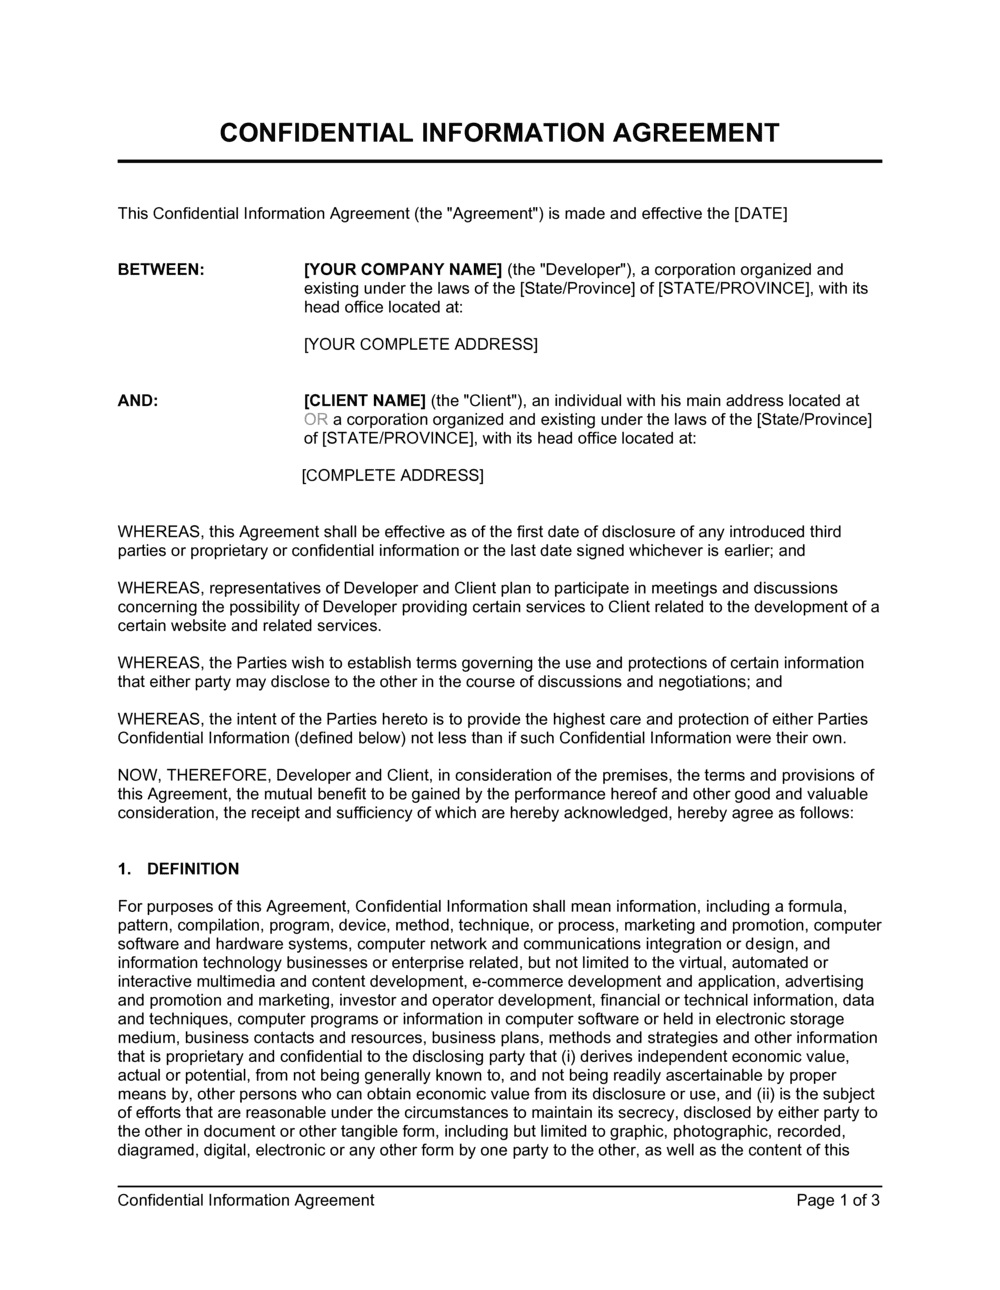 Business-in-a-Box's Confidential Information Agreement Template